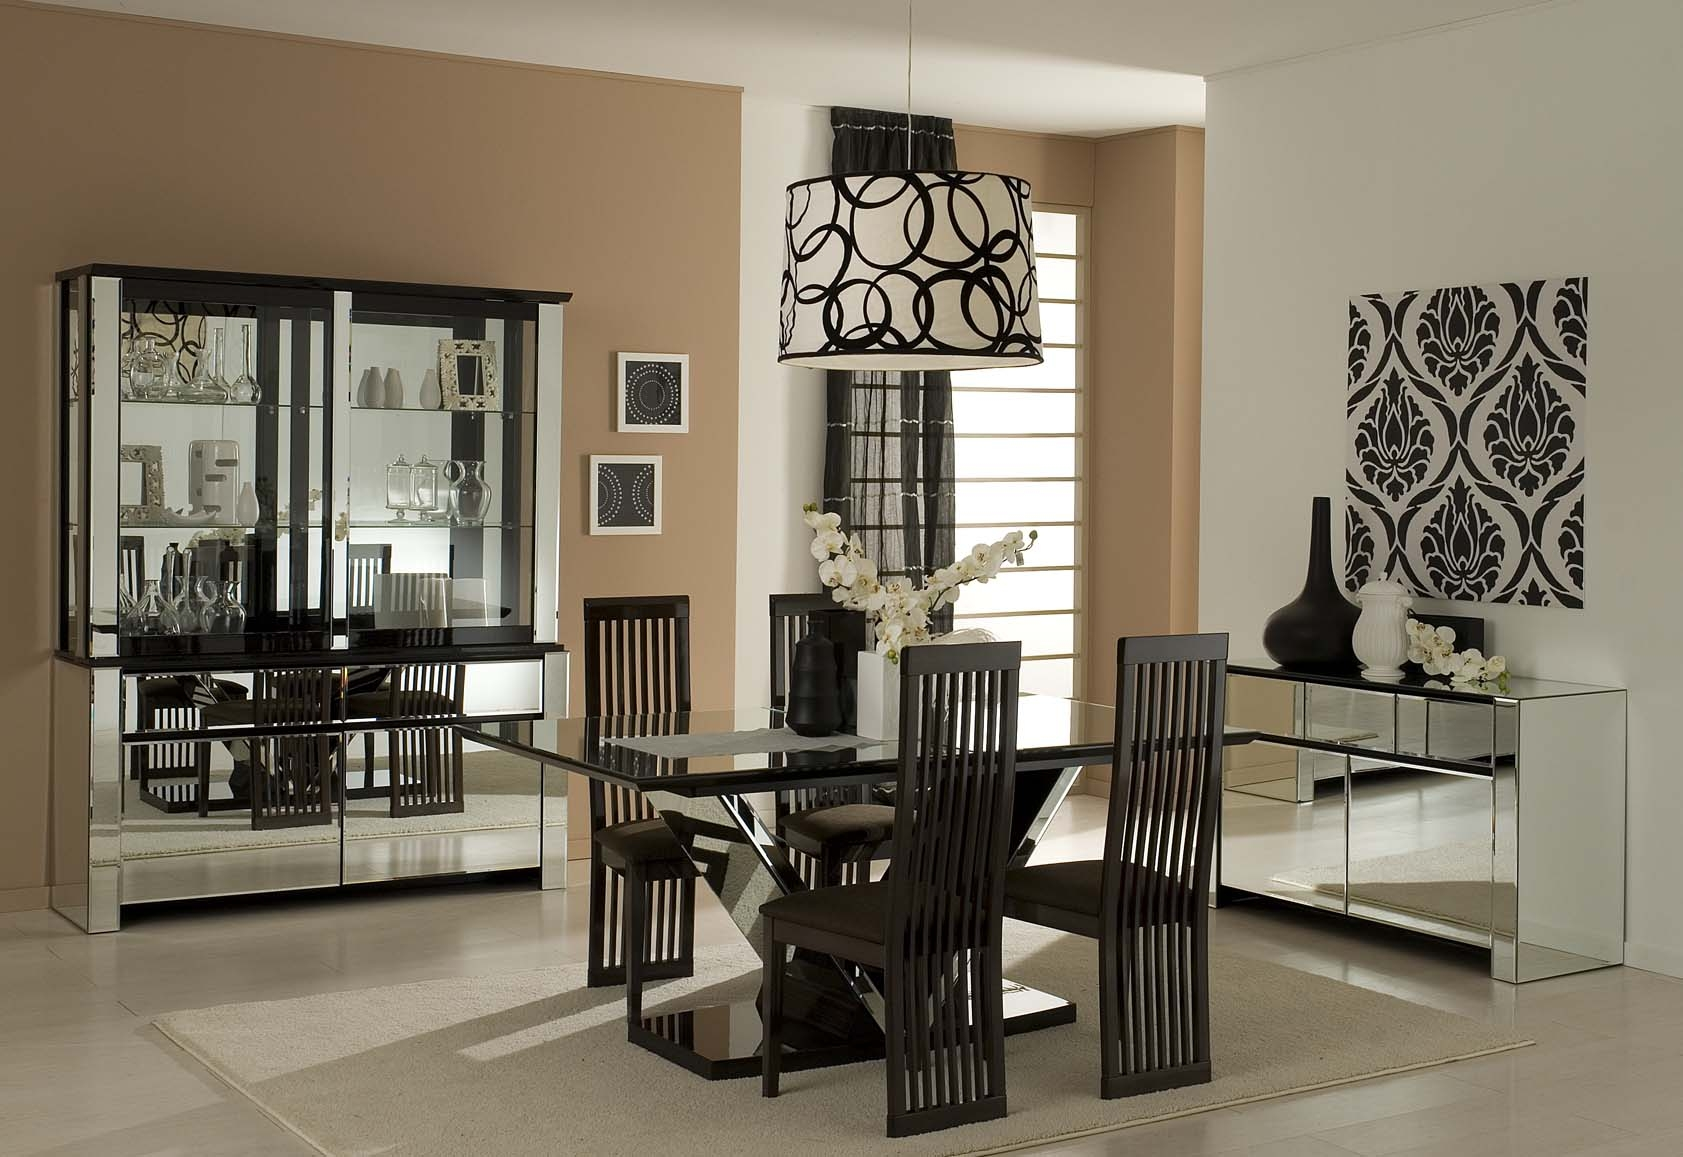 Decorating ideas for dining room Photo - 1